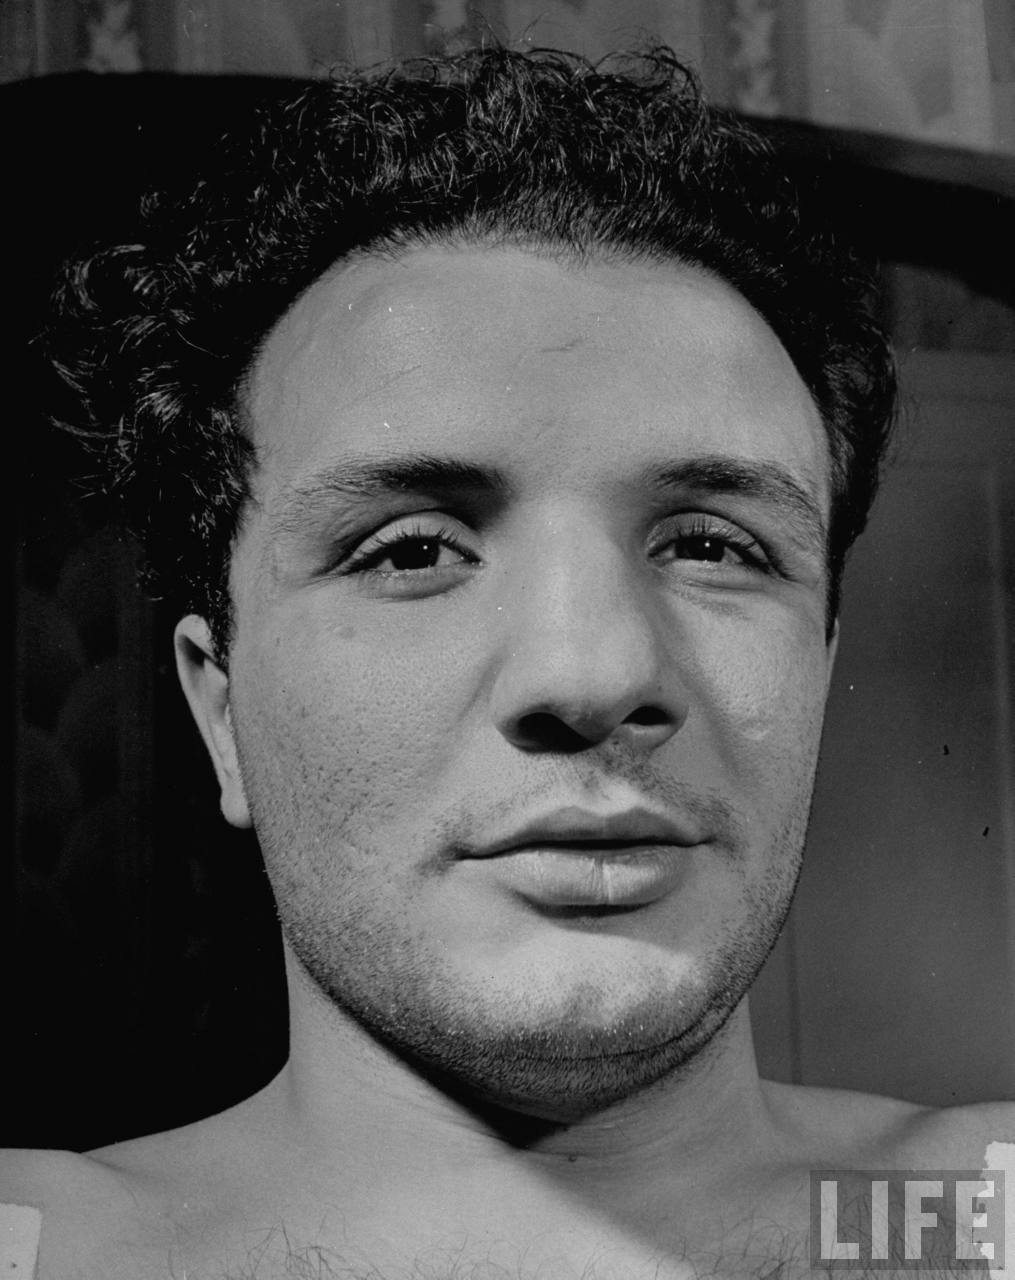 All lives are failures in some degree or another. Somewhere along the line we fudge the pristine youthful dream. Even when we achieve, the compromises we've ... - jake-lamotta1